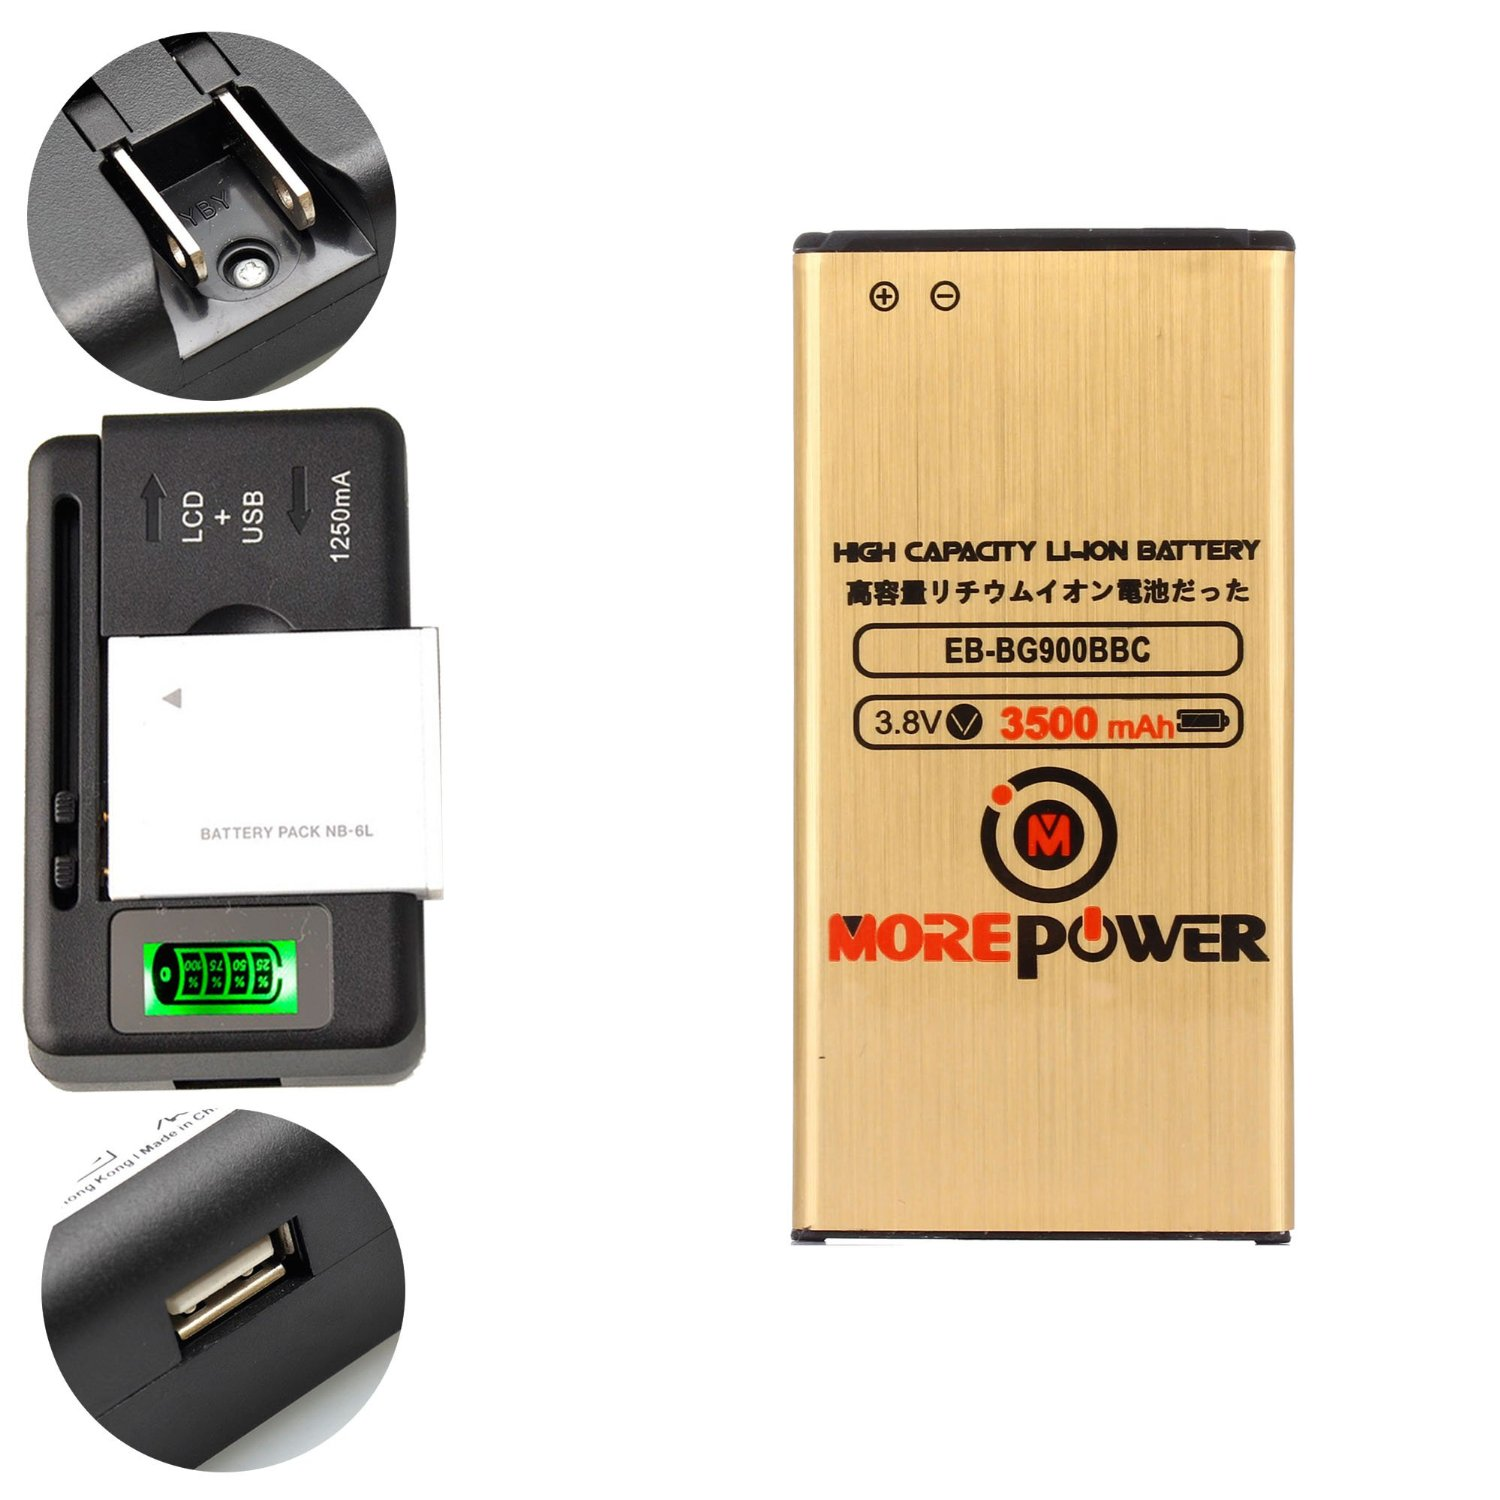 MOREPOWER Samsung Galaxy S5 Battery EB-BG900BBC EB-BG900BBE EB-BG900BBU High Capacity & Long Lasting + Universal Battery Charger With LED Indicator 3500 mAh For Samsung Galaxy S5 SM-G900F / Samsung Galaxy S5 SM-G900T / Samsung Galaxy S5 SM-G900P / Samsung Galaxy S5 SM-G900A / Samsung Galaxy S5